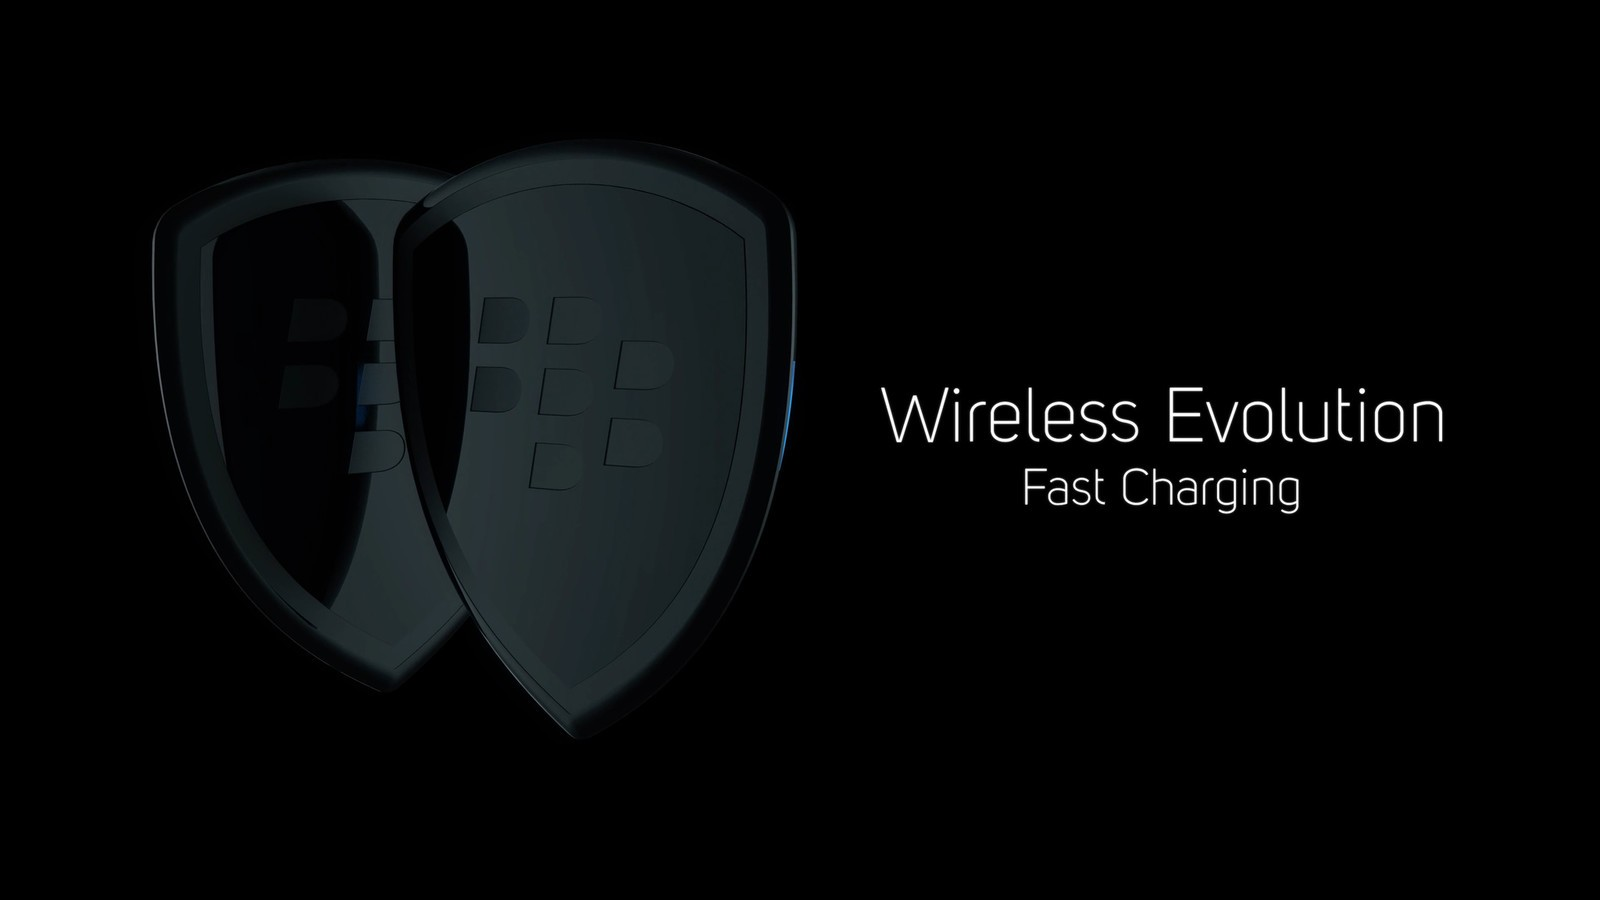 Il caricabatterie wireless per il BlackBerry Evolve X è disponibile su Amazon India